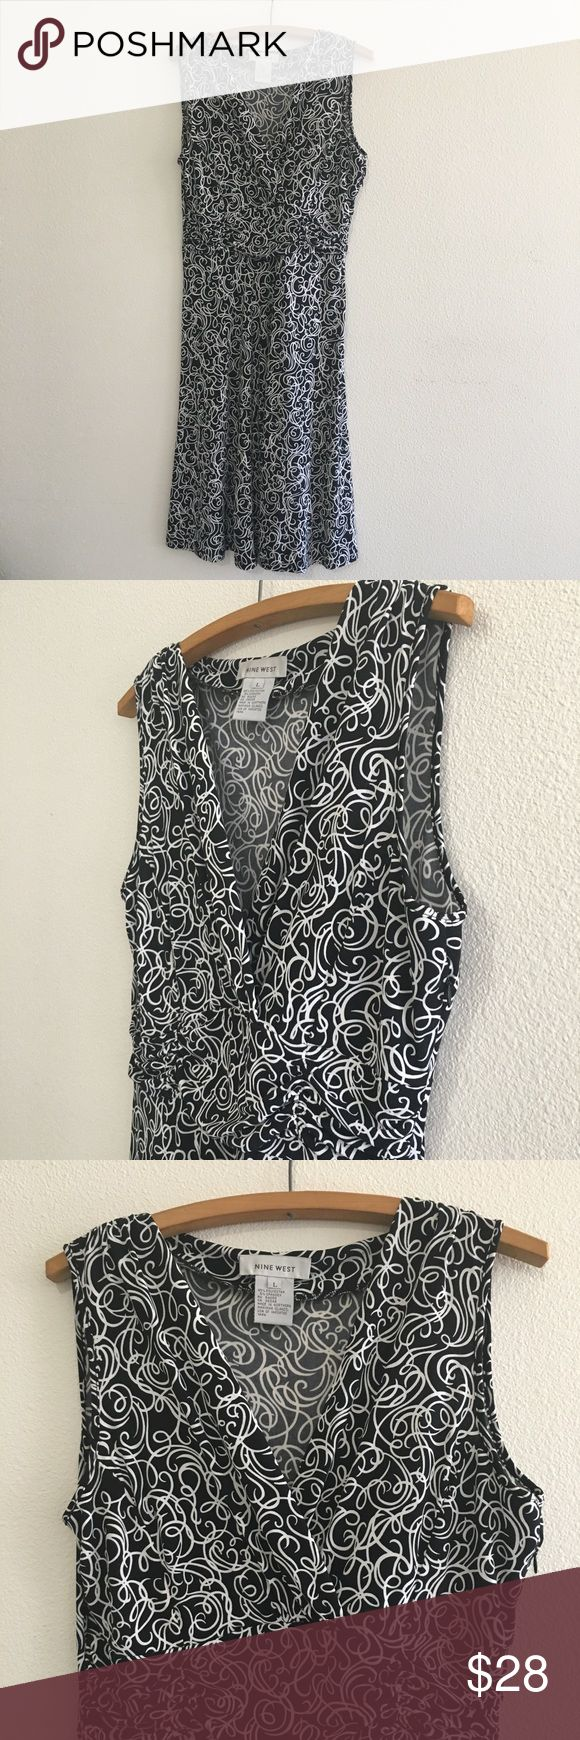 "Nine West Black & White Swirl Dress Gorgeous black and white dress! Has some stretch to it, overlap top and side zip. Semi pleated skirt. Perfect for day or night!  Size Large 44"" length (top shoulder to bottom)  19"" bust (pit-pit)   Bundle fav items for a personal discount. Offers are always welcome, too! No trades. Thank you! (12) Nine West Dresses Midi"